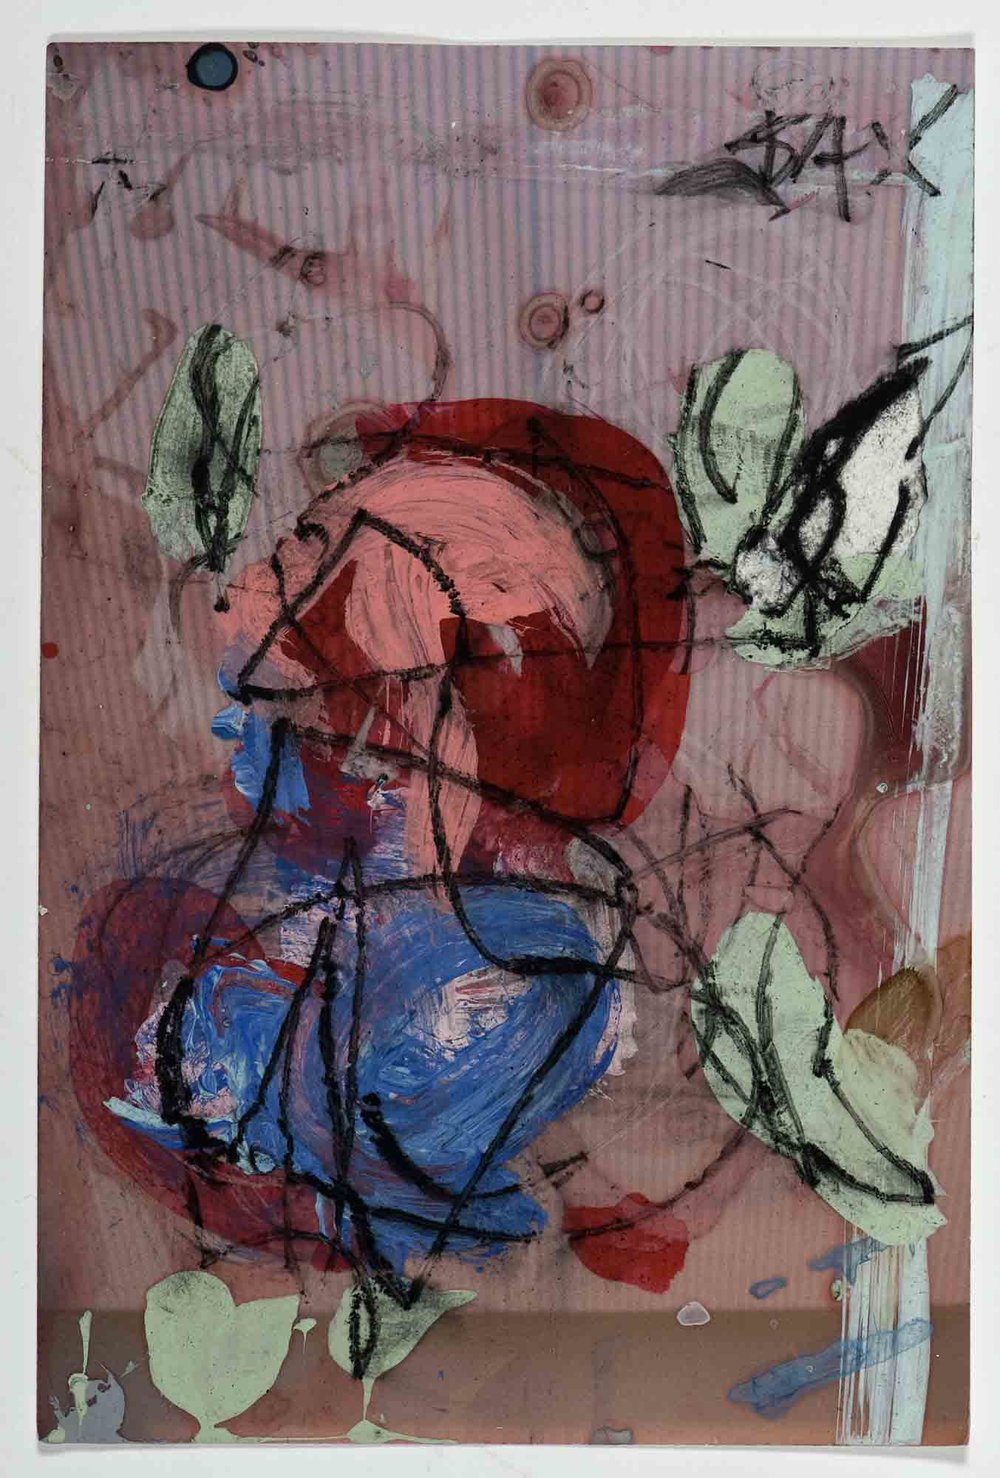 Matthew Bax,  Sample Afternoon Delight,  2012, acrylic, charcoal, pencil, wax crayon on paper, 15 x 10cm